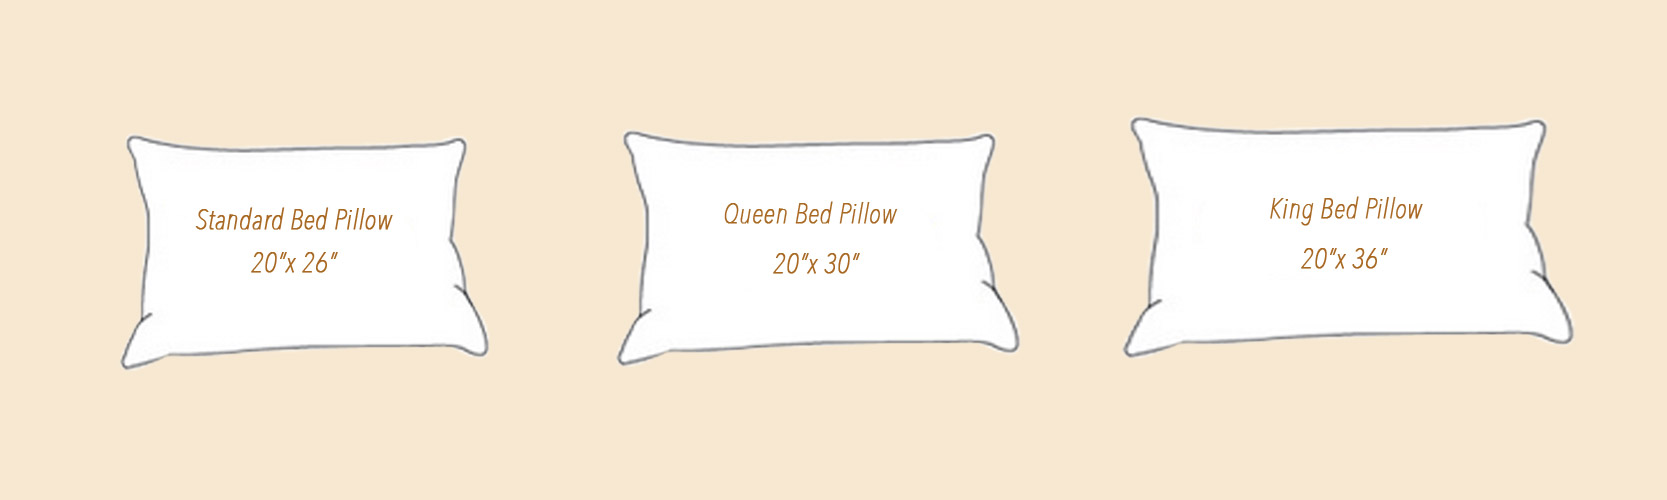 Standard Bed Pillows Blog Pillow Sizes Bed Pillow Sizes